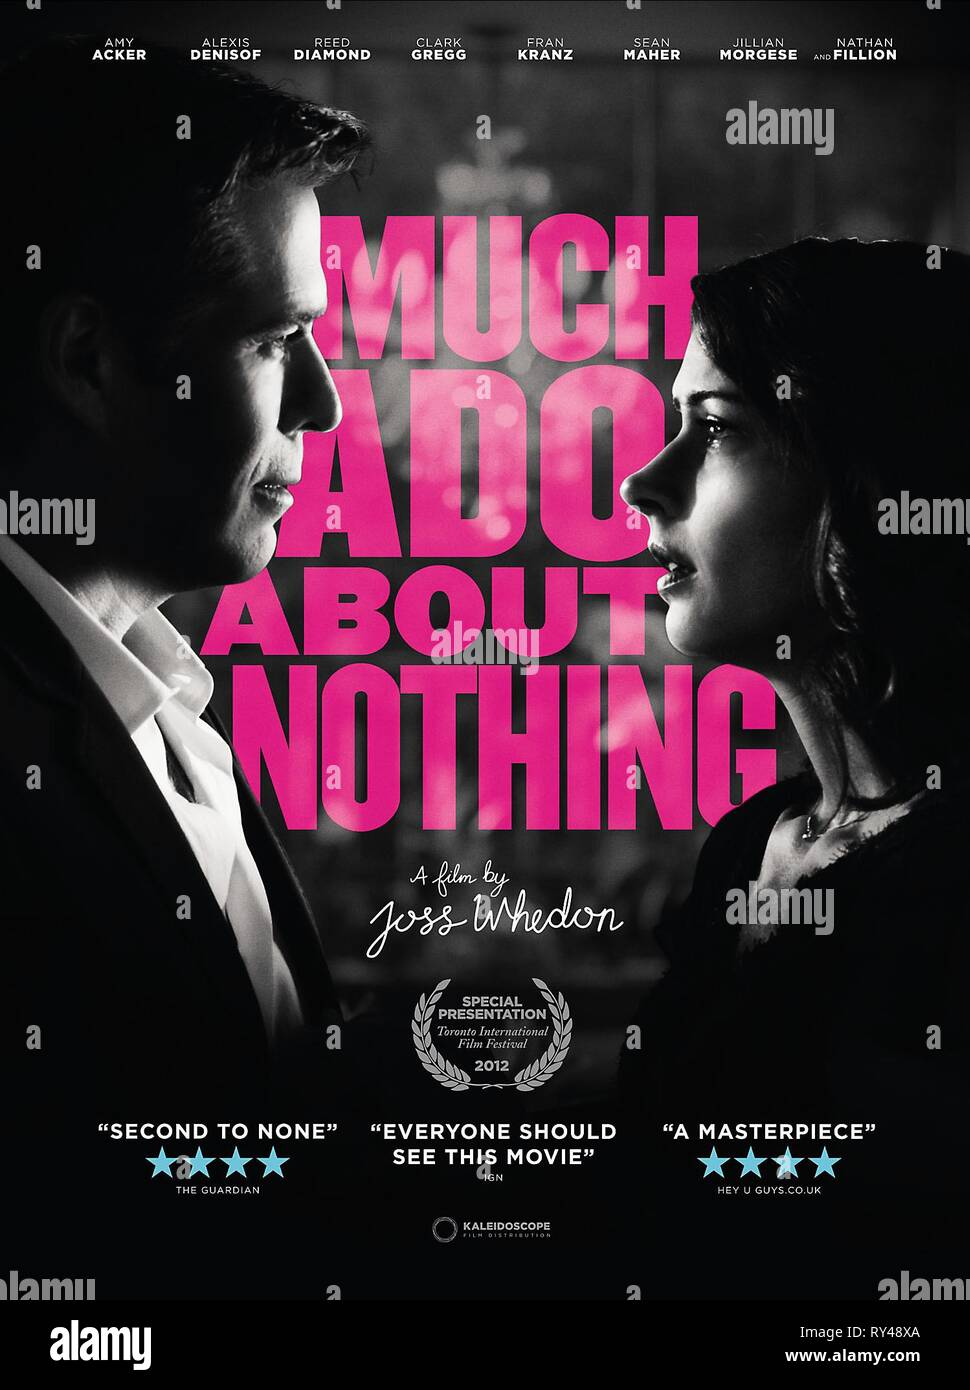 MOVIE POSTER, MUCH ADO ABOUT NOTHING, 2012 - Stock Image